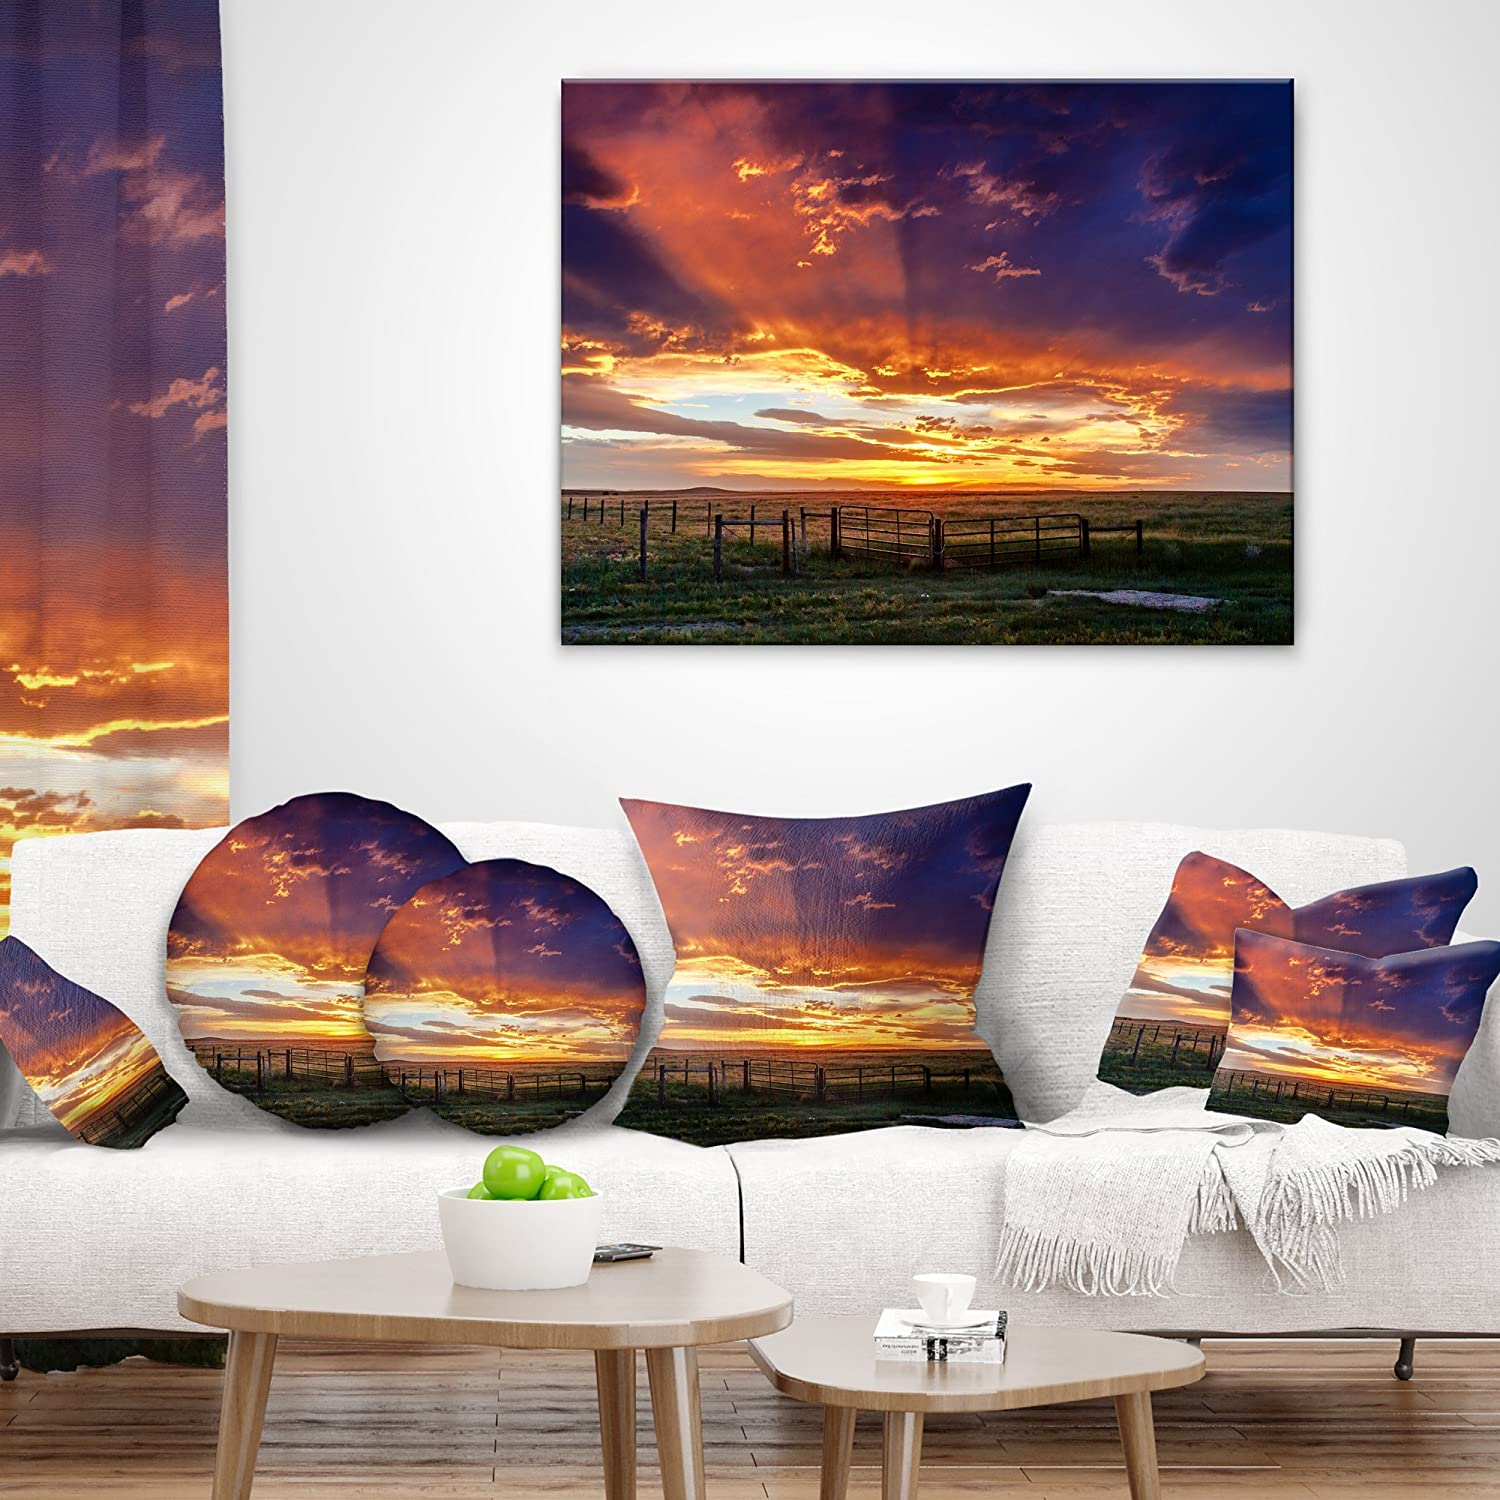 X 16 In Designart Cu14053 16 16 Dramatic Sunset Over Prairie Landscape Printed Cushion Cover For Living Room Sofa Throw Pillow 16 In In